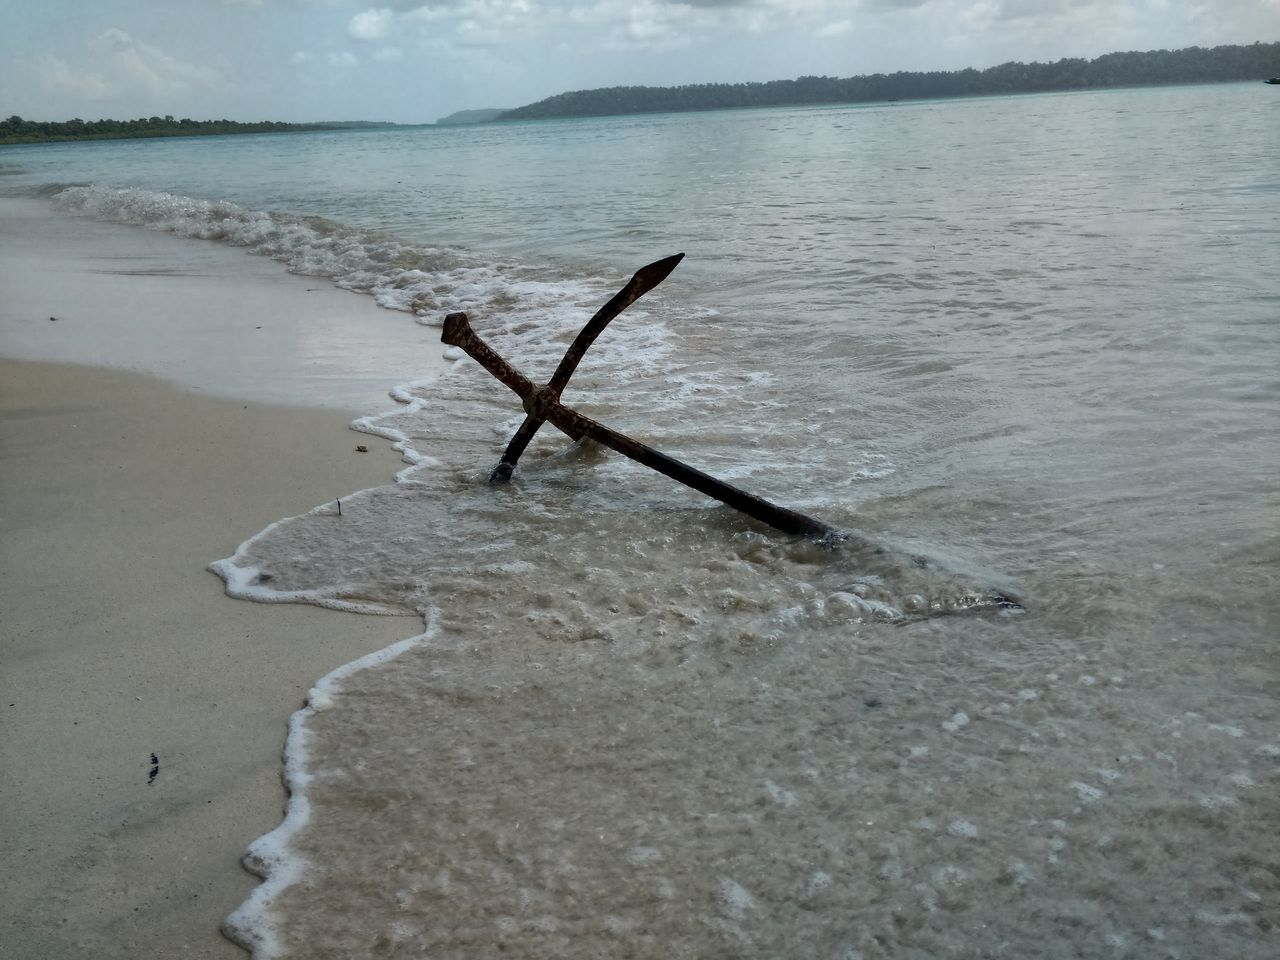 beach, sea, water, shore, sand, nature, outdoors, day, no people, beauty in nature, scenics, wave, horizon over water, sky